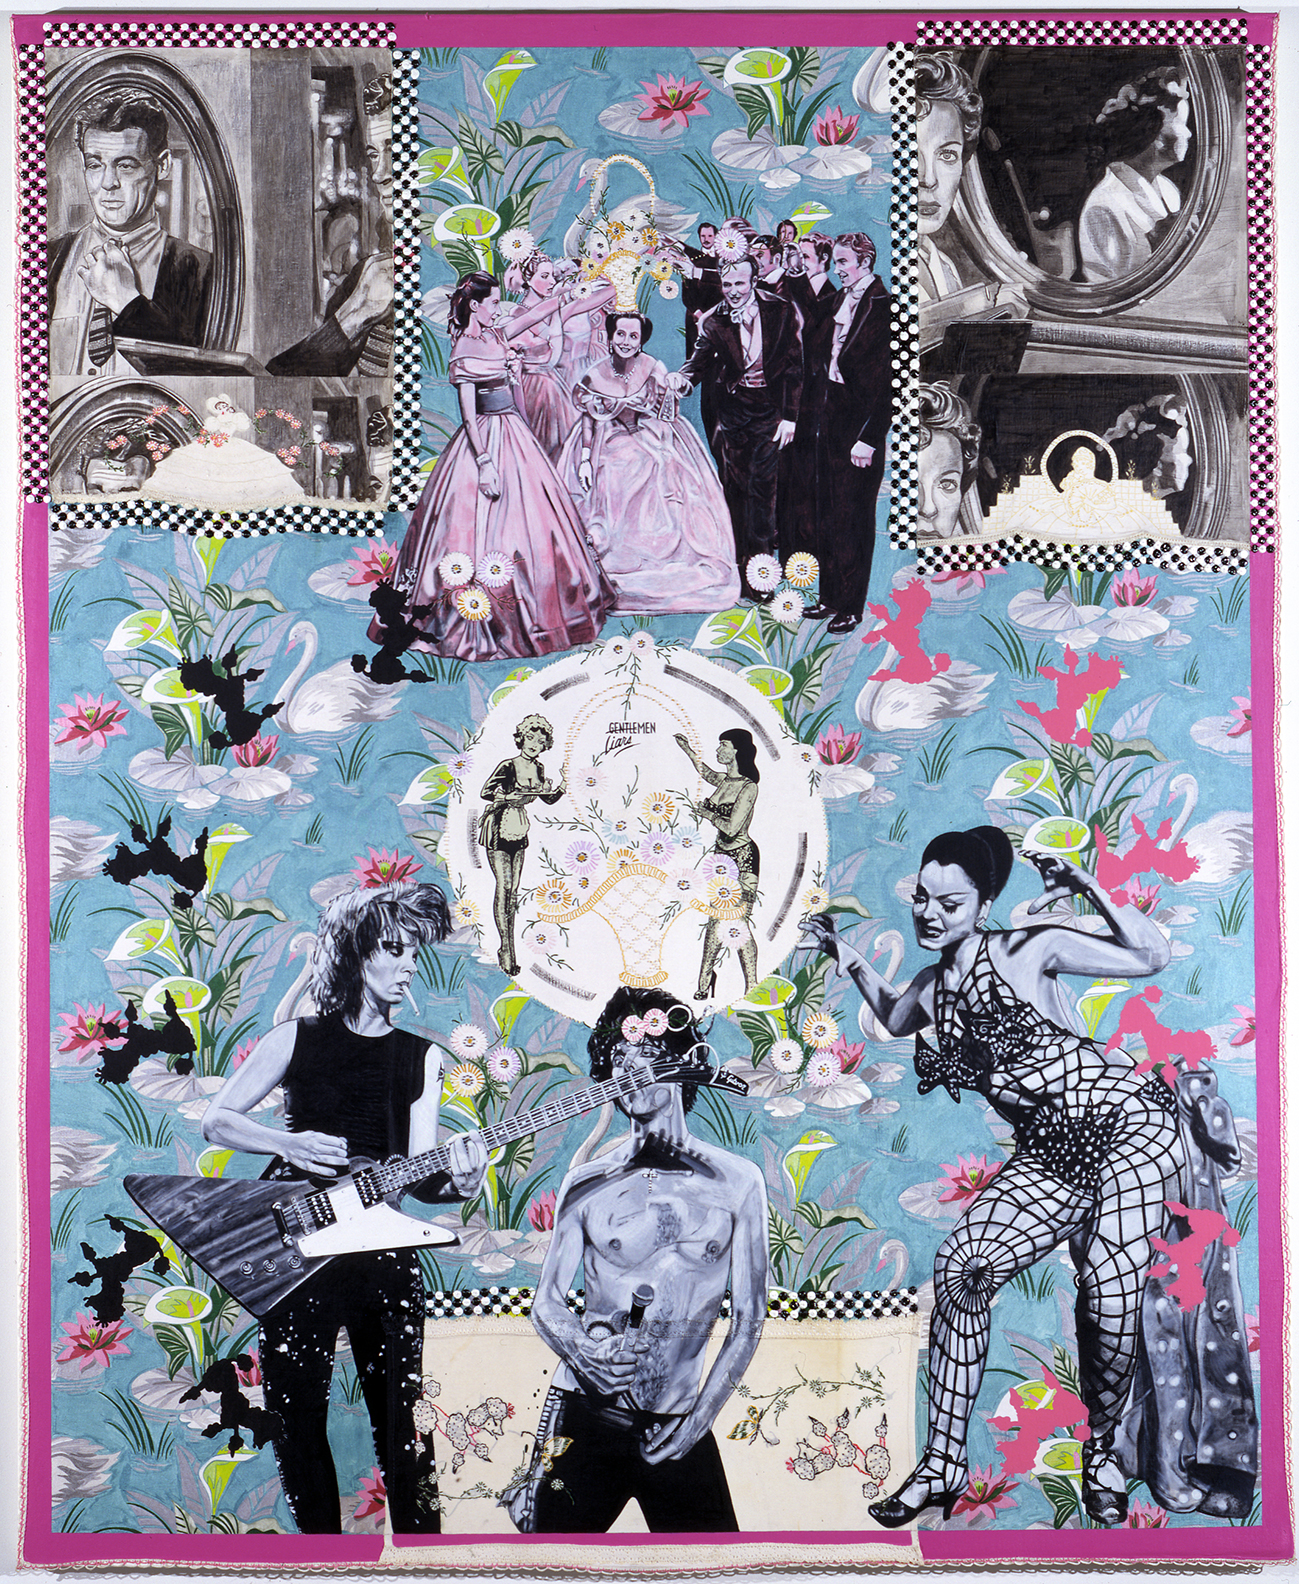 CAROLE CAROOMPAS, Hester and Zorro: In Quest of a New World: Ladies, Gentlemen, Master, Servent, 2000, acrylic on found embroidery over panel, 84 x 72 inches